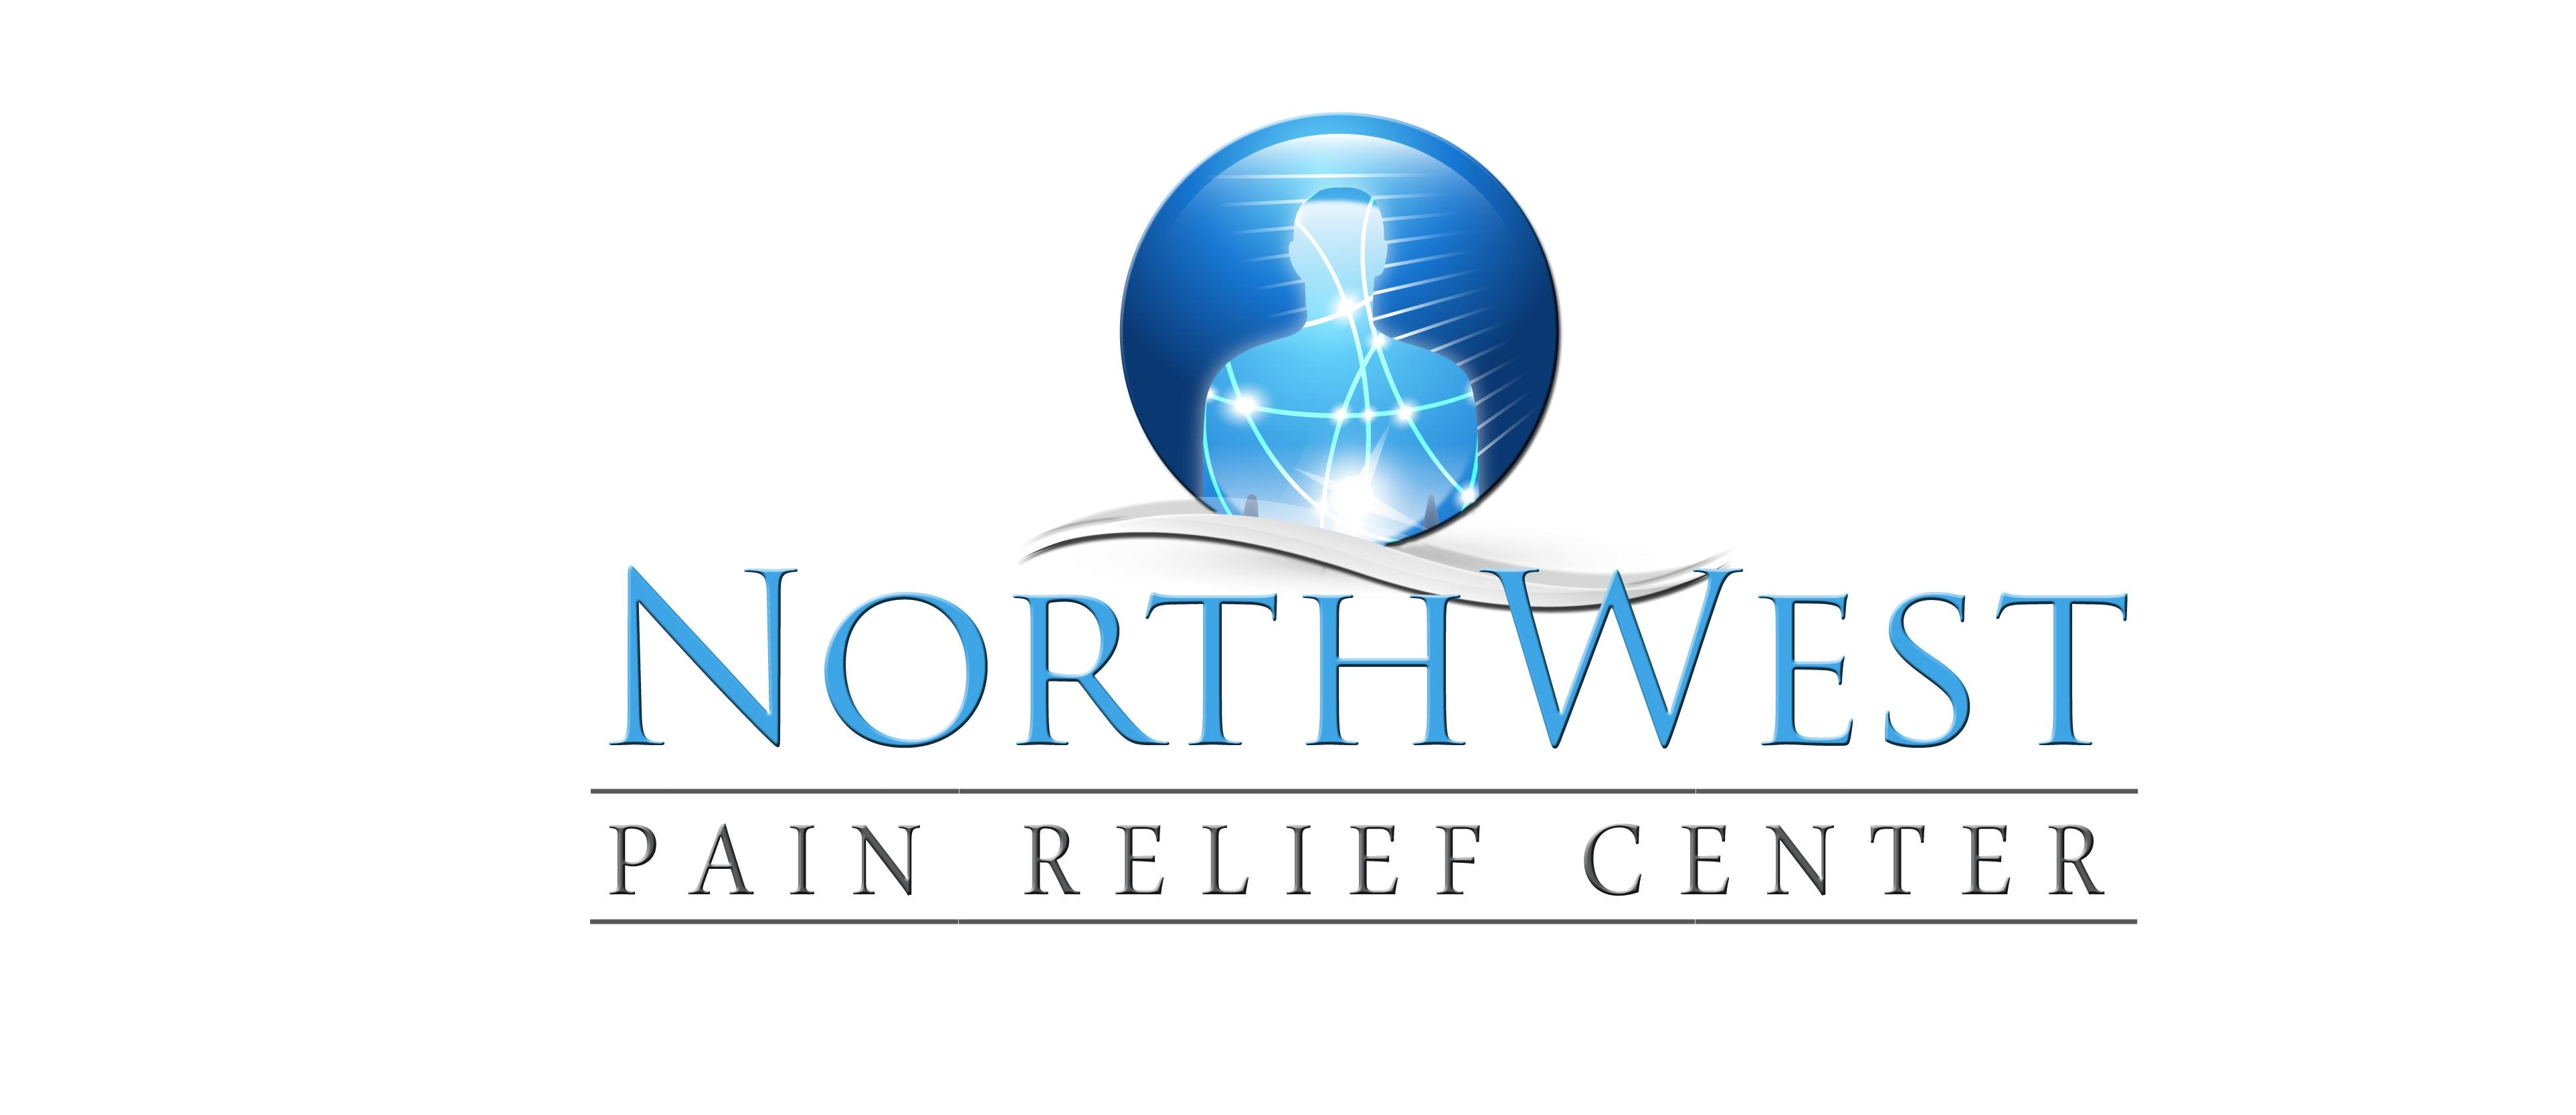 Nw Pain Relief Center